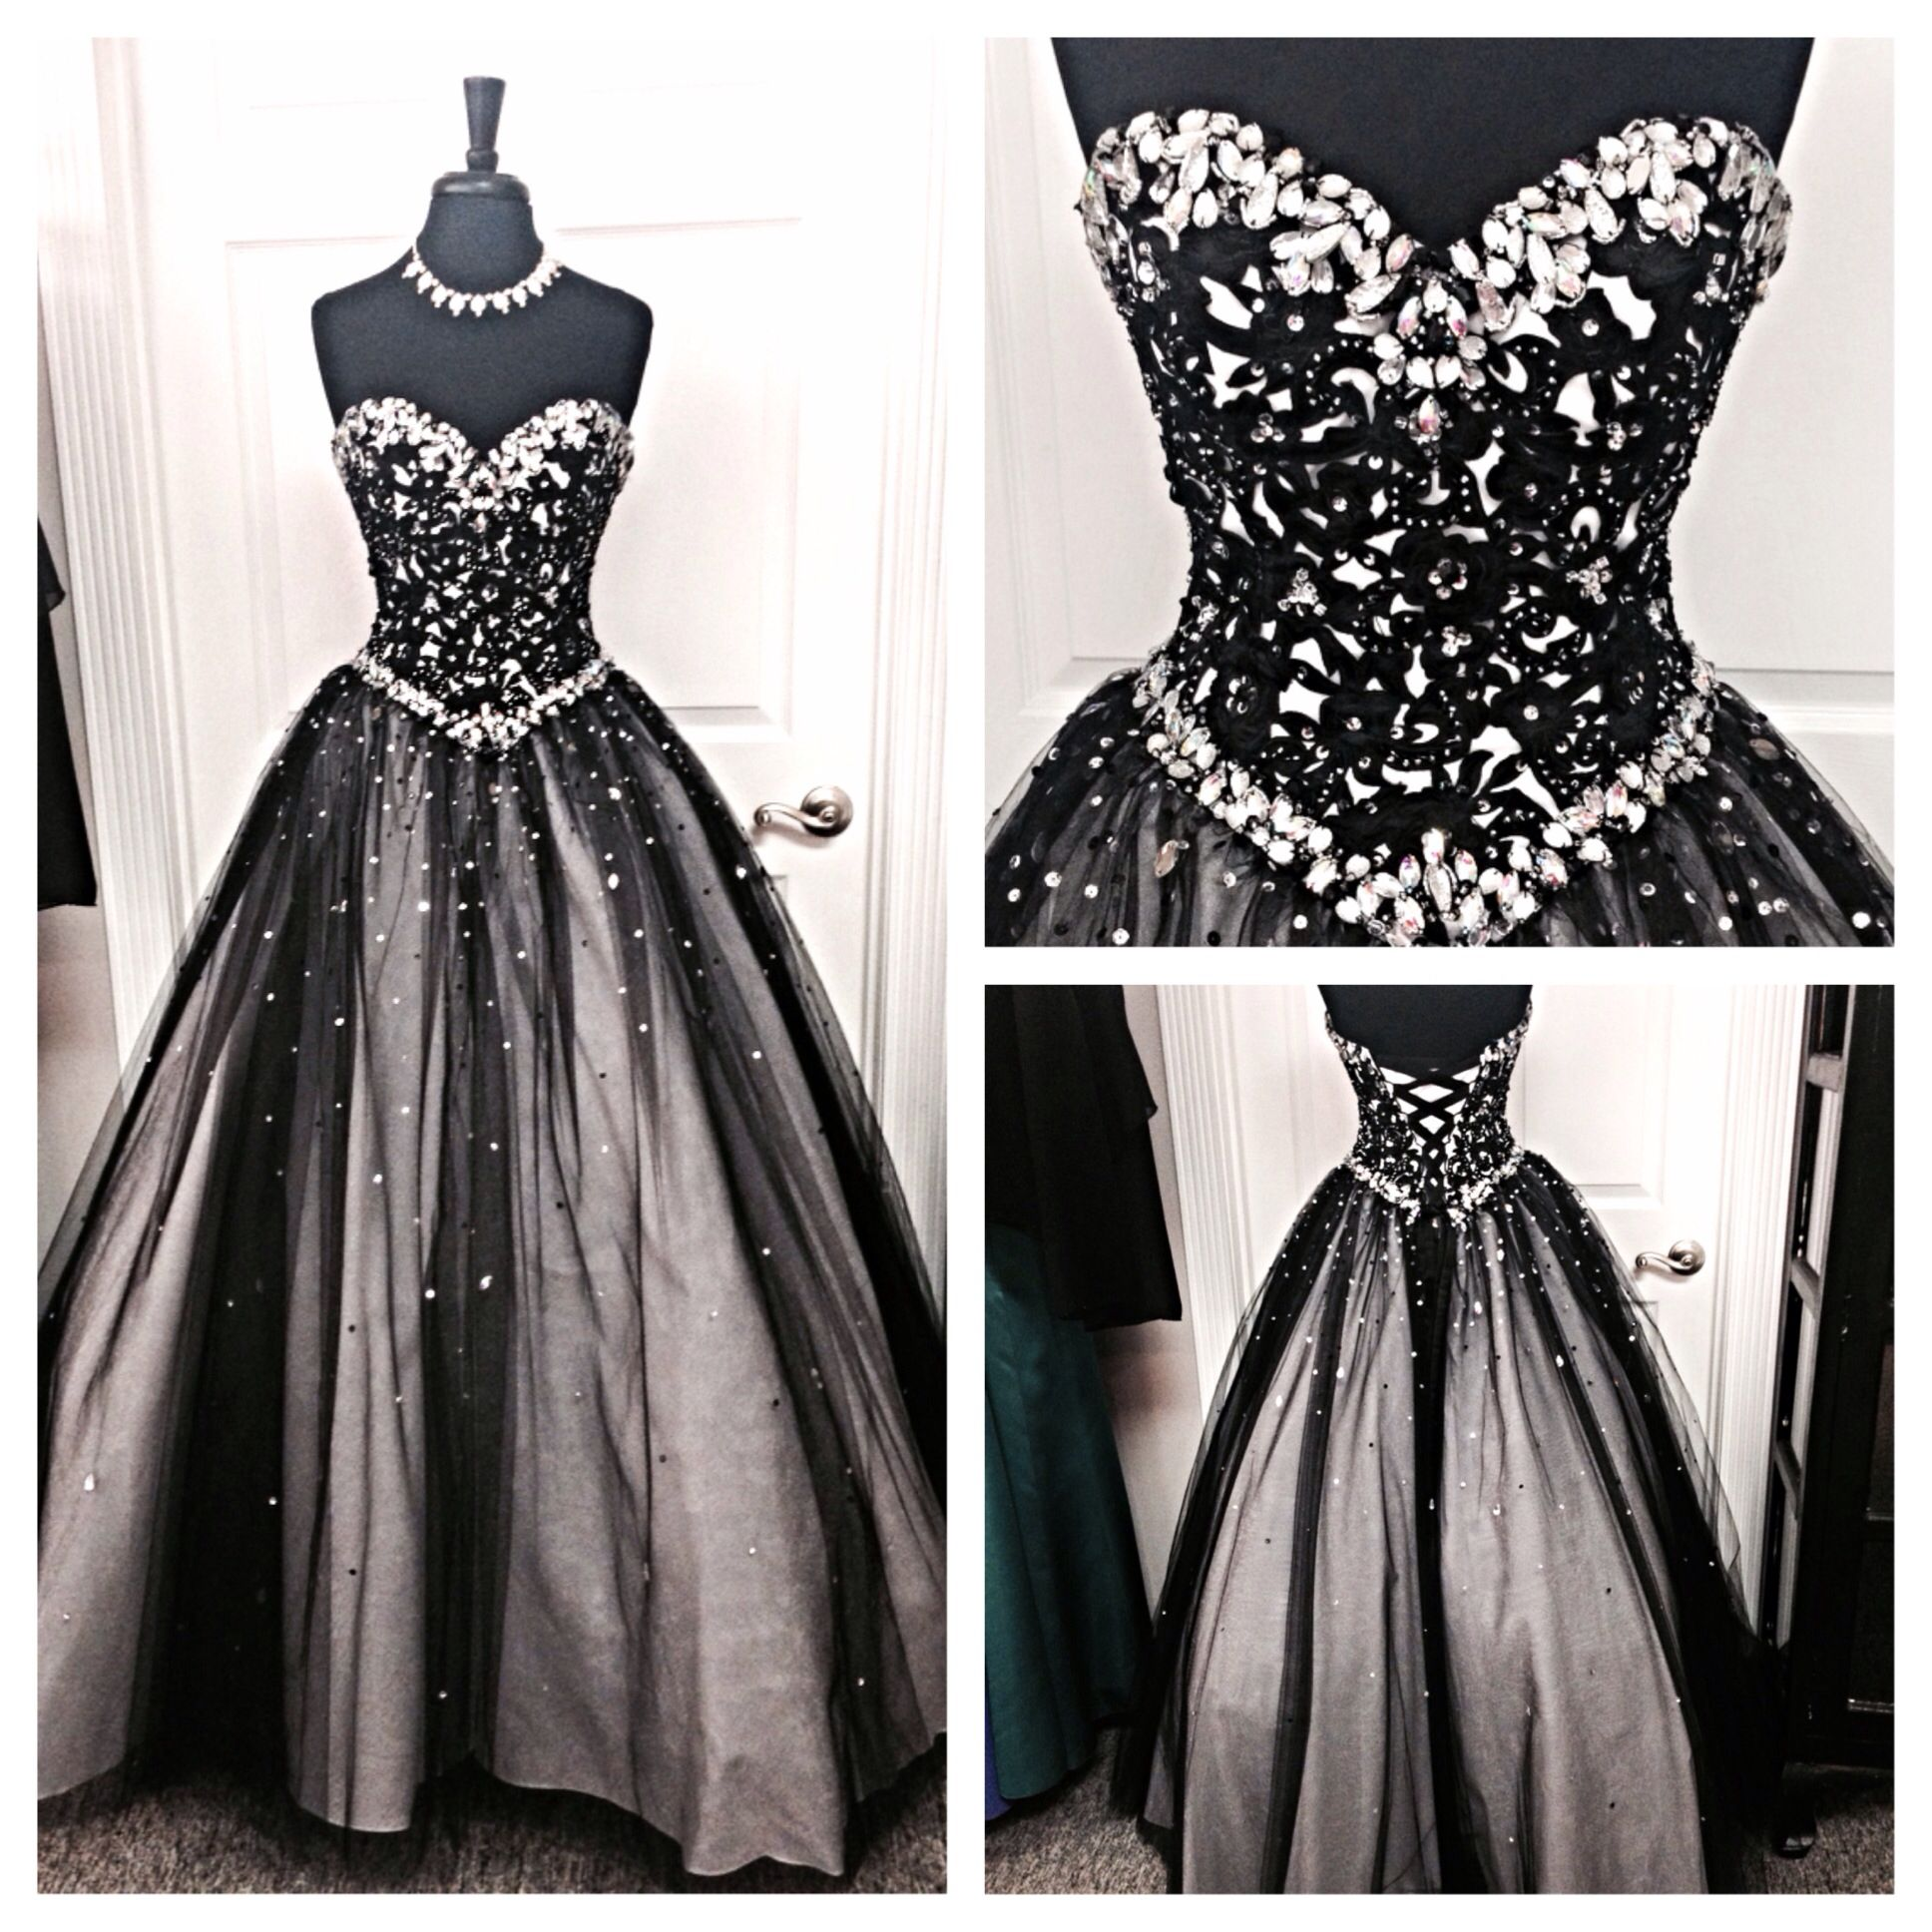 Fabulous black lace ball gown! … | beauty pageant dresses | Pinte…